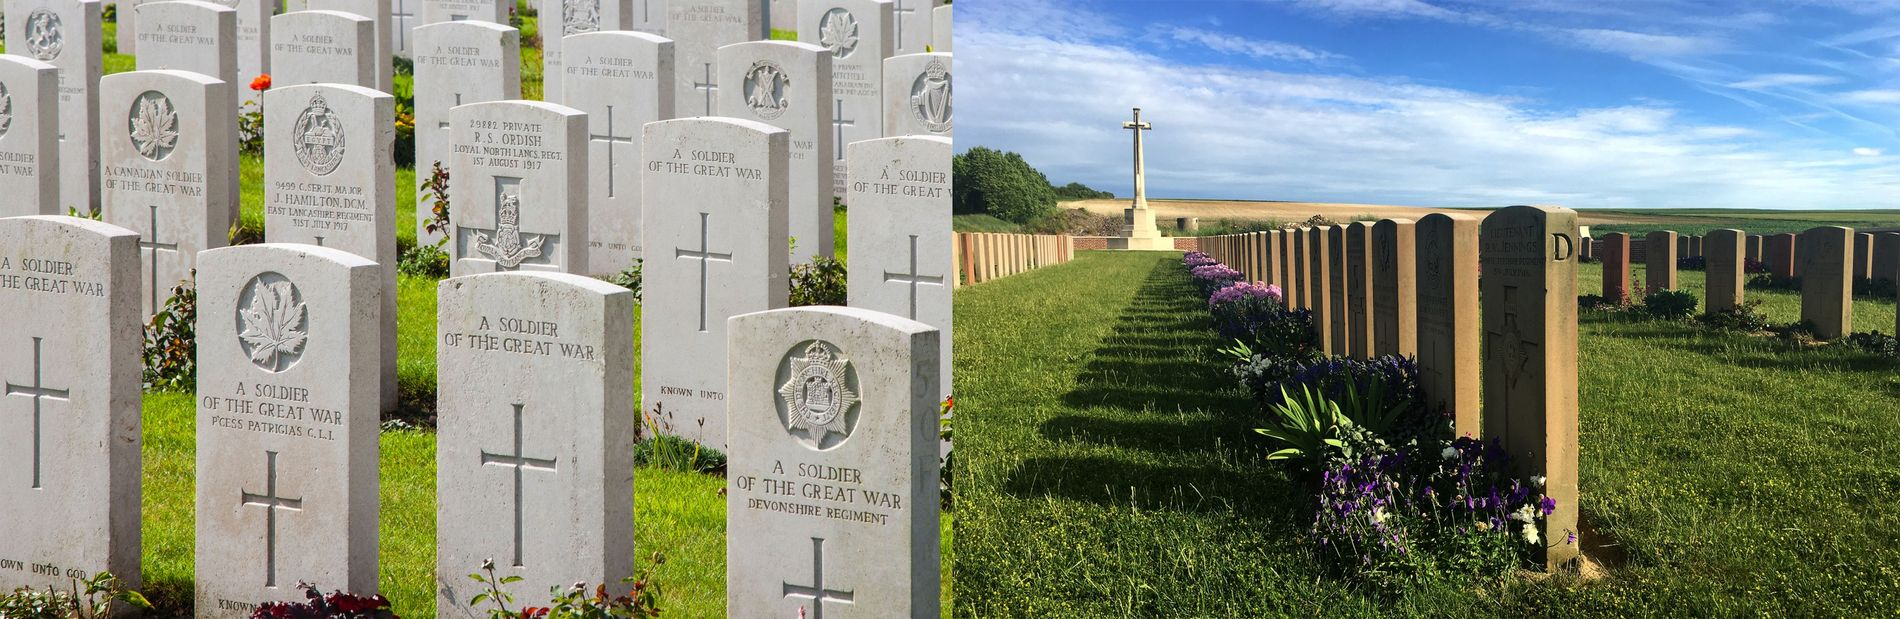 Graves in Belgium and France stand identified and anonymous together.